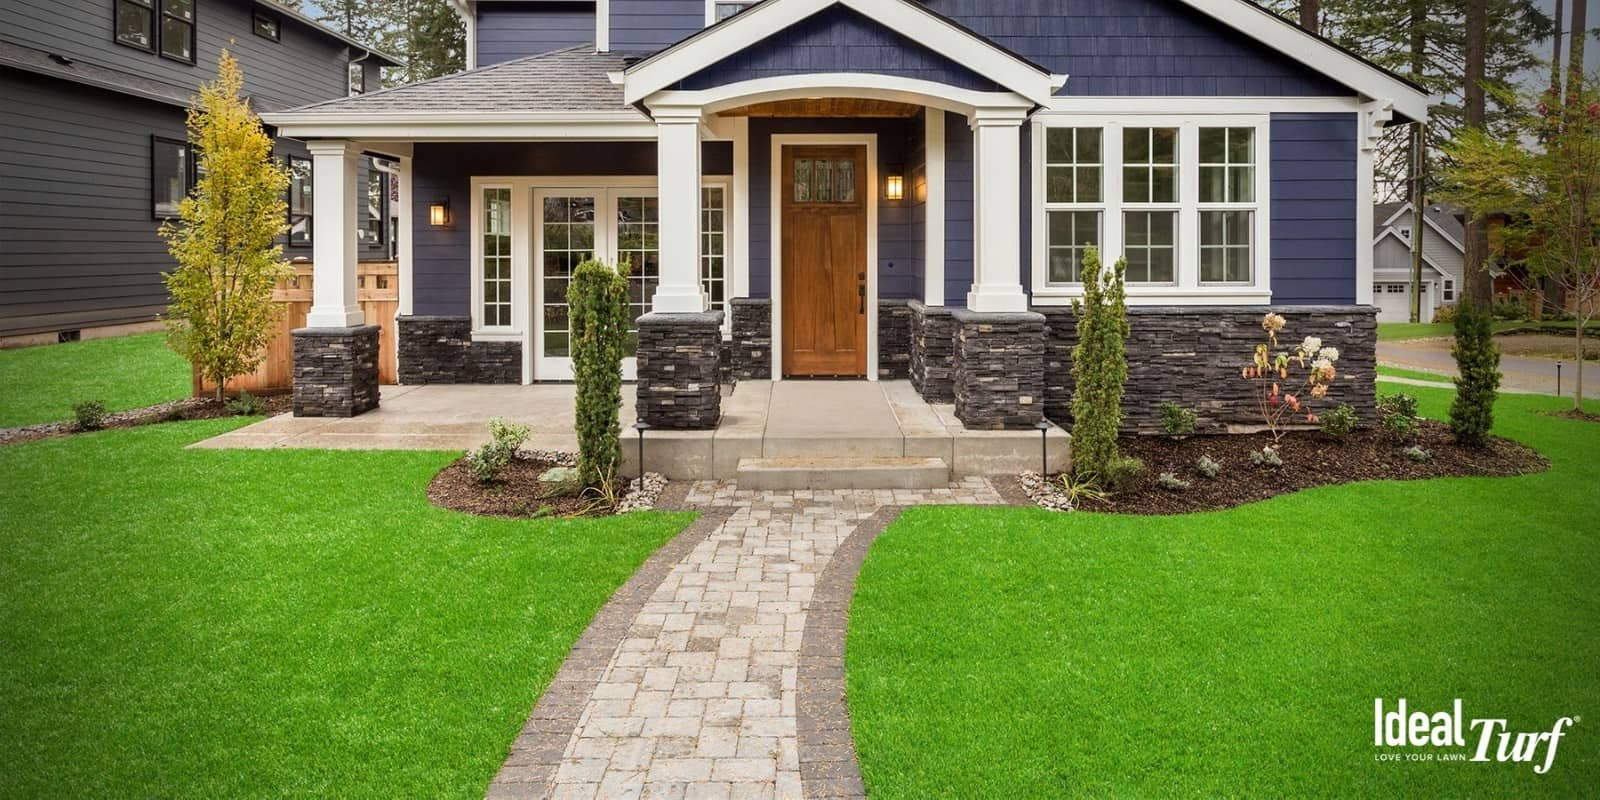 Blue house with the best artificial grass installed in front and sideyard